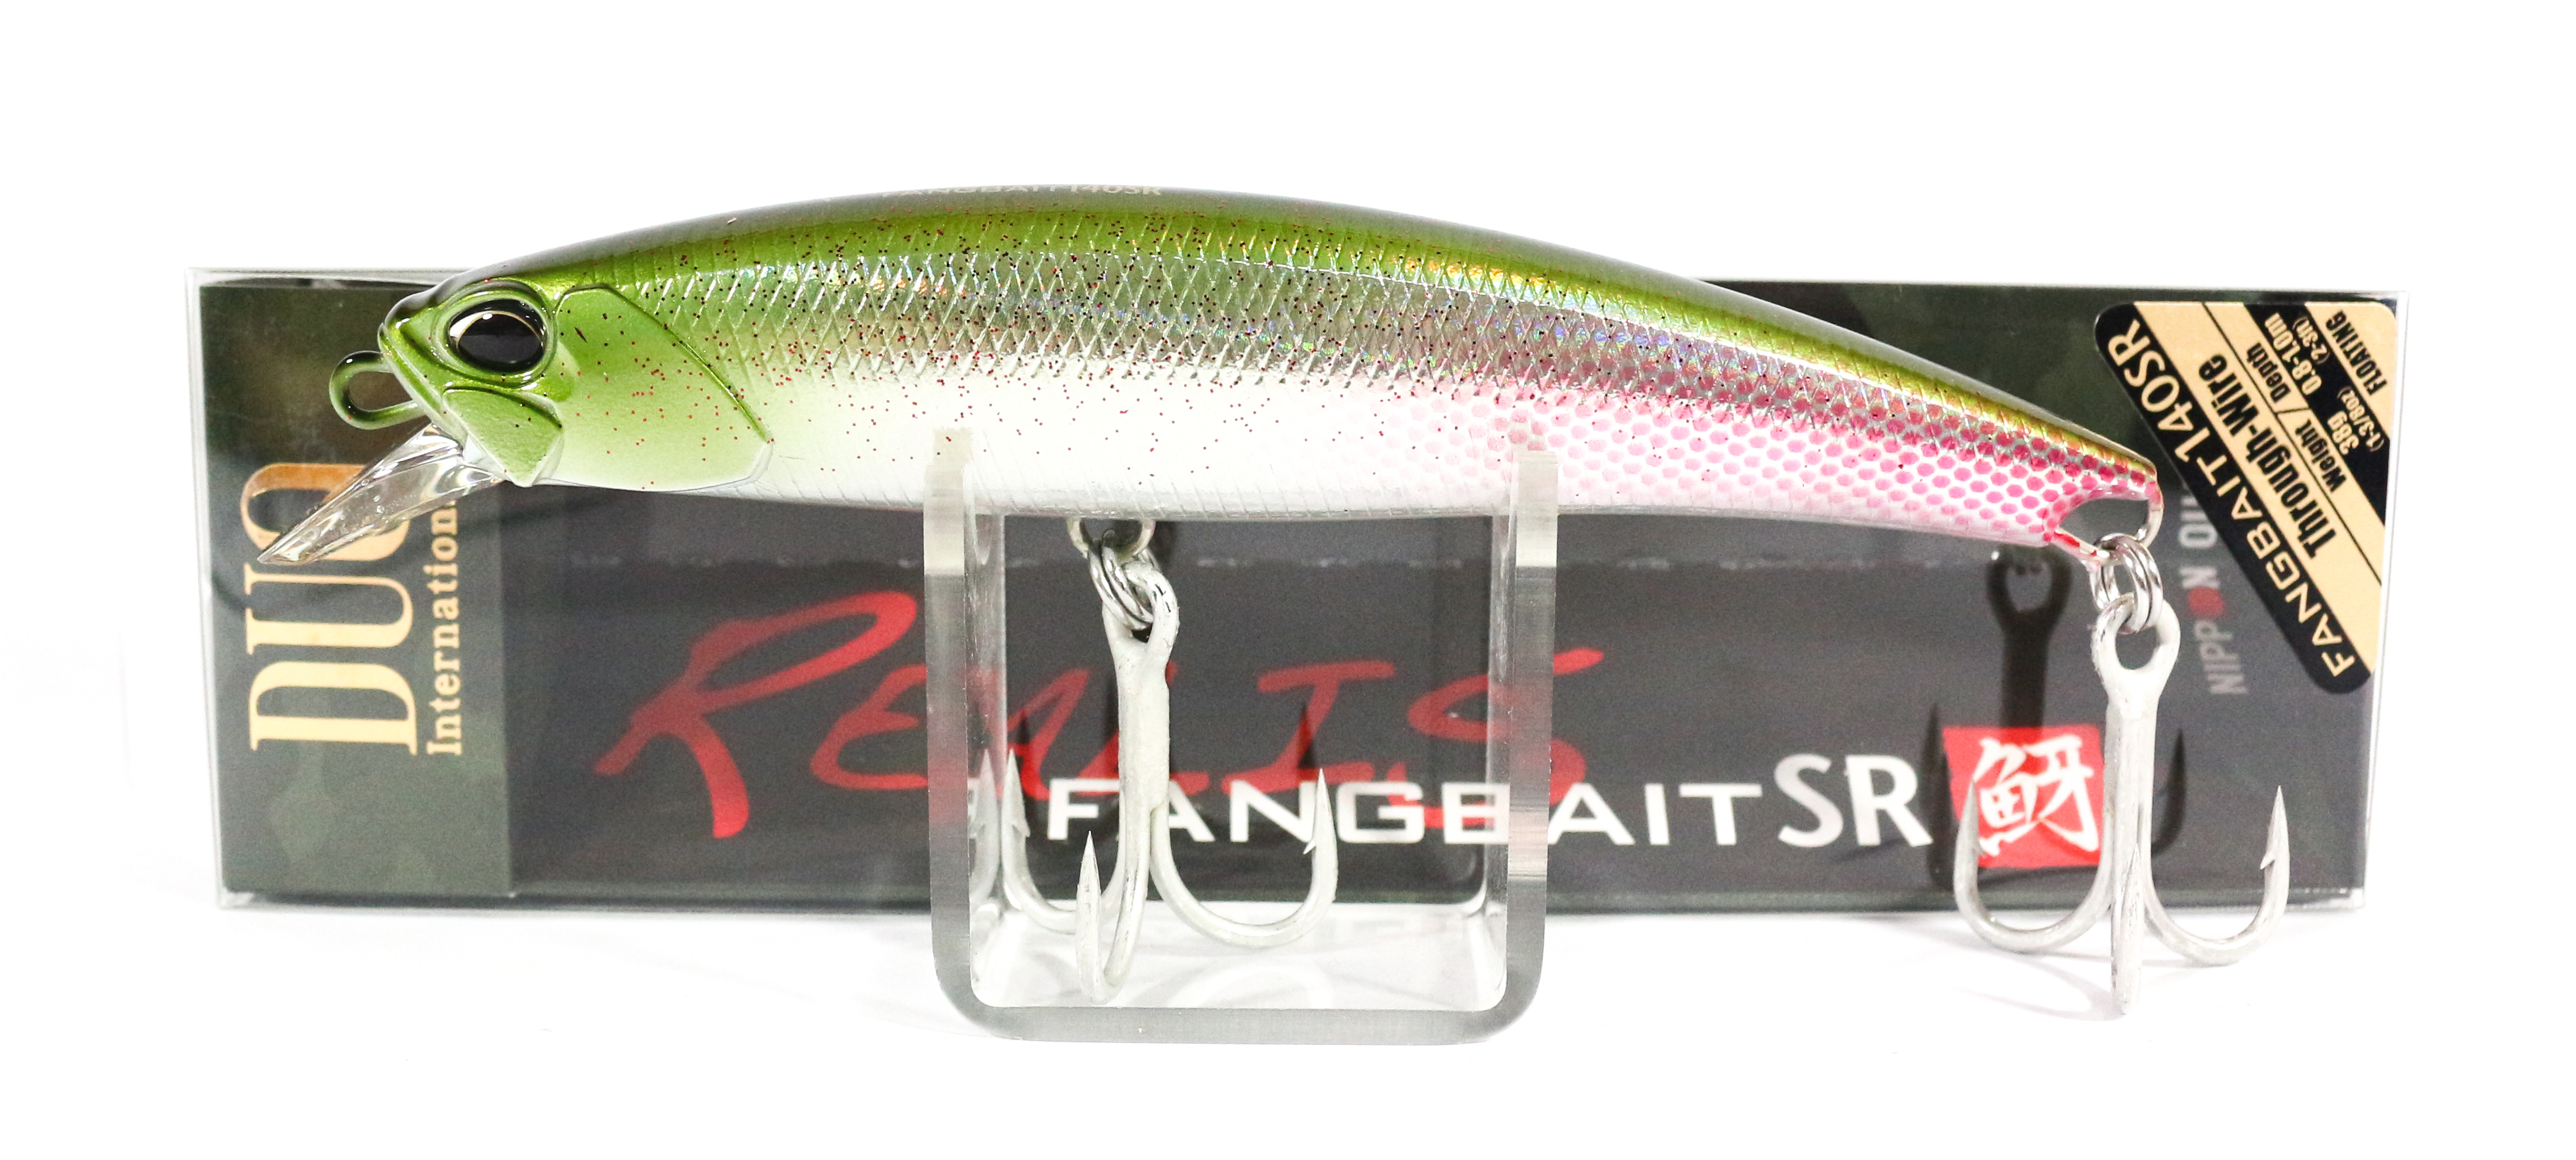 Sale Duo Realis Fangbait 140SR Floating Lure AFA3333 (3687)